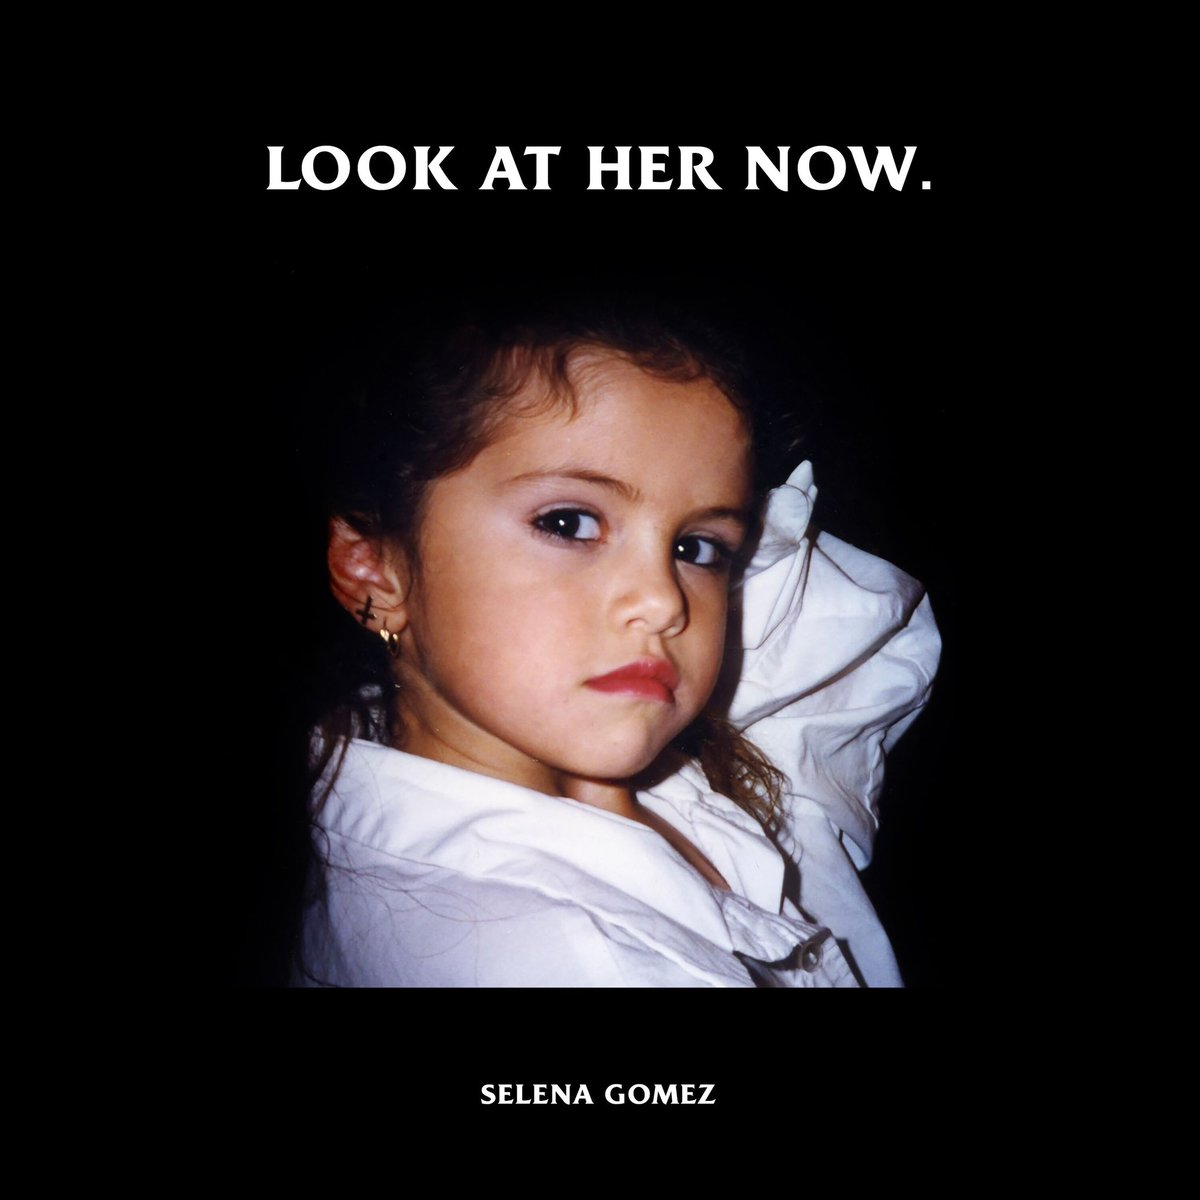 Make your own Look At Her Now photo! ❤ https://t.co/vi9vR0m40D https://t.co/ghuq2o0uvL